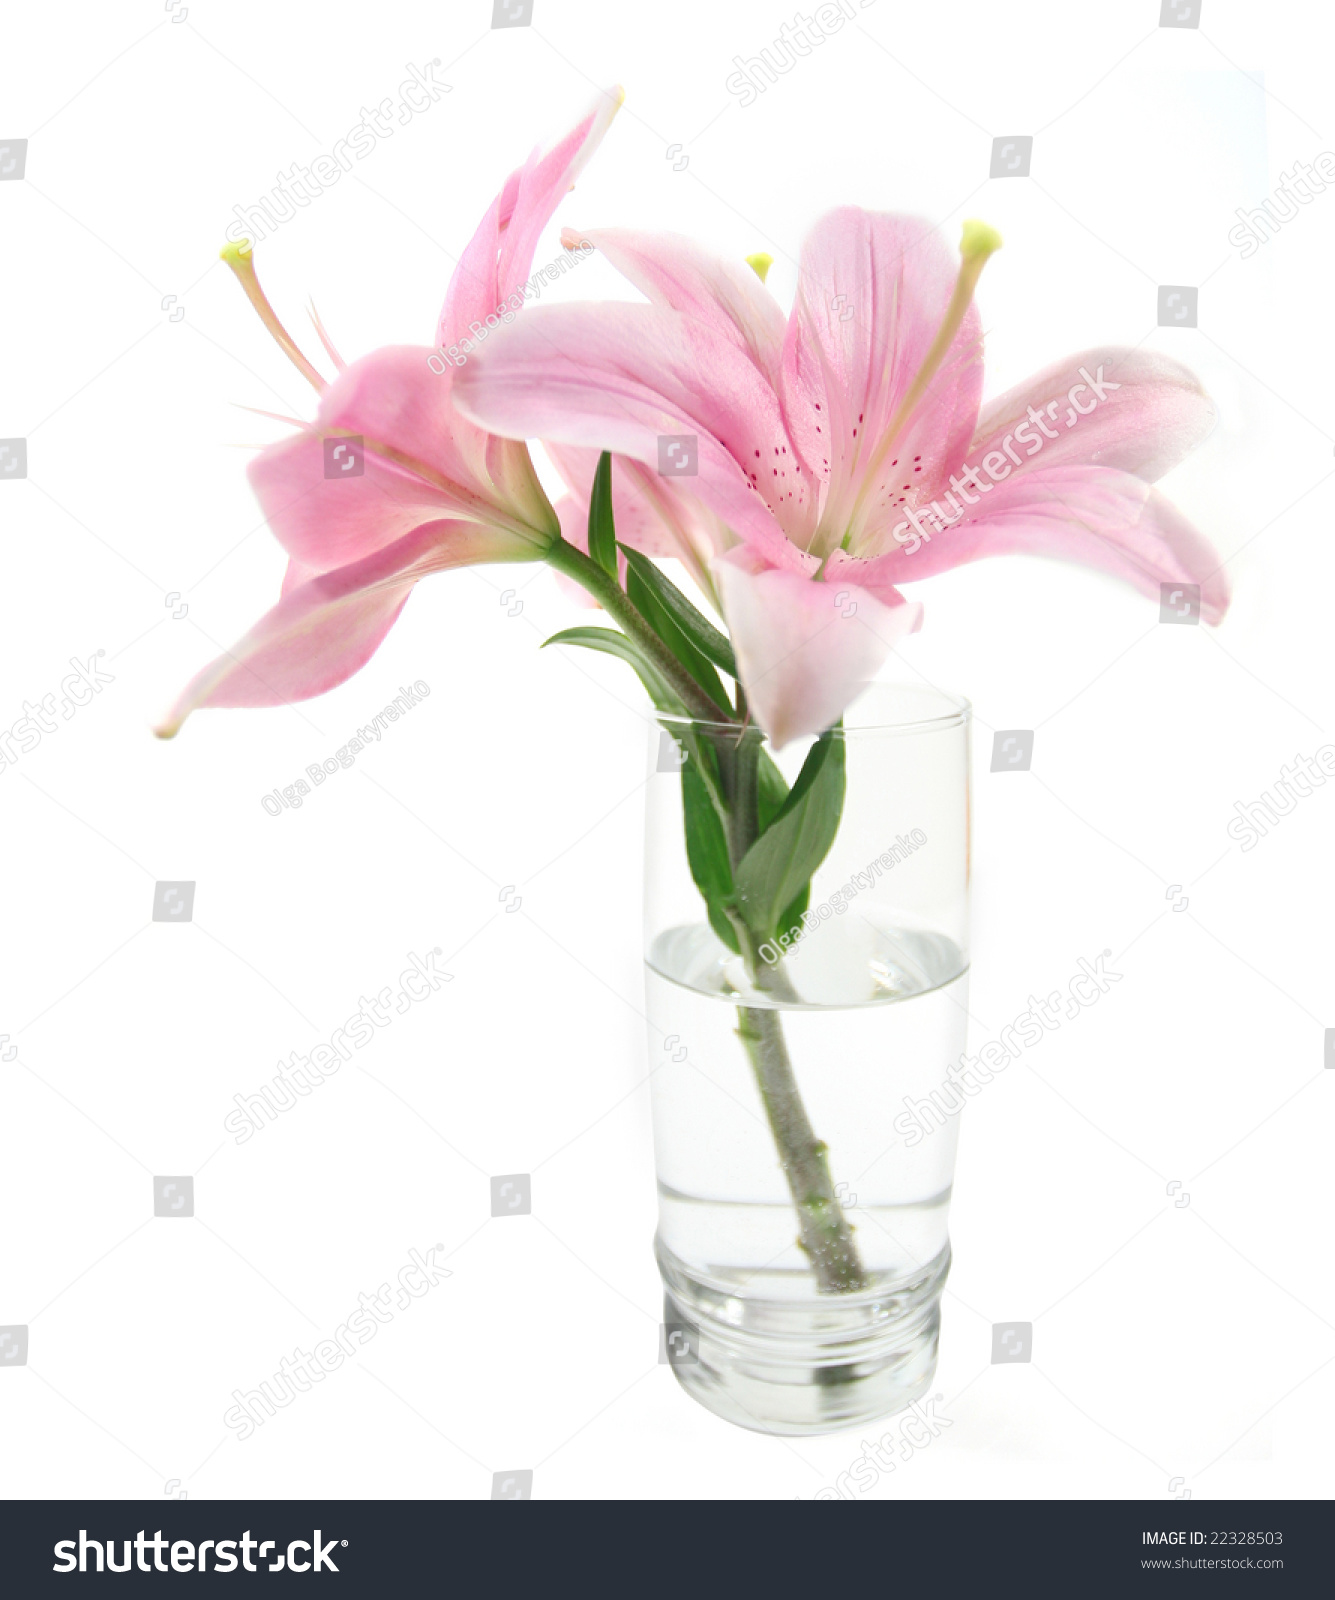 Tropical lily flower glass vase water stock photo edit now tropical lily flower in a glass or vase in water isolated over white background izmirmasajfo